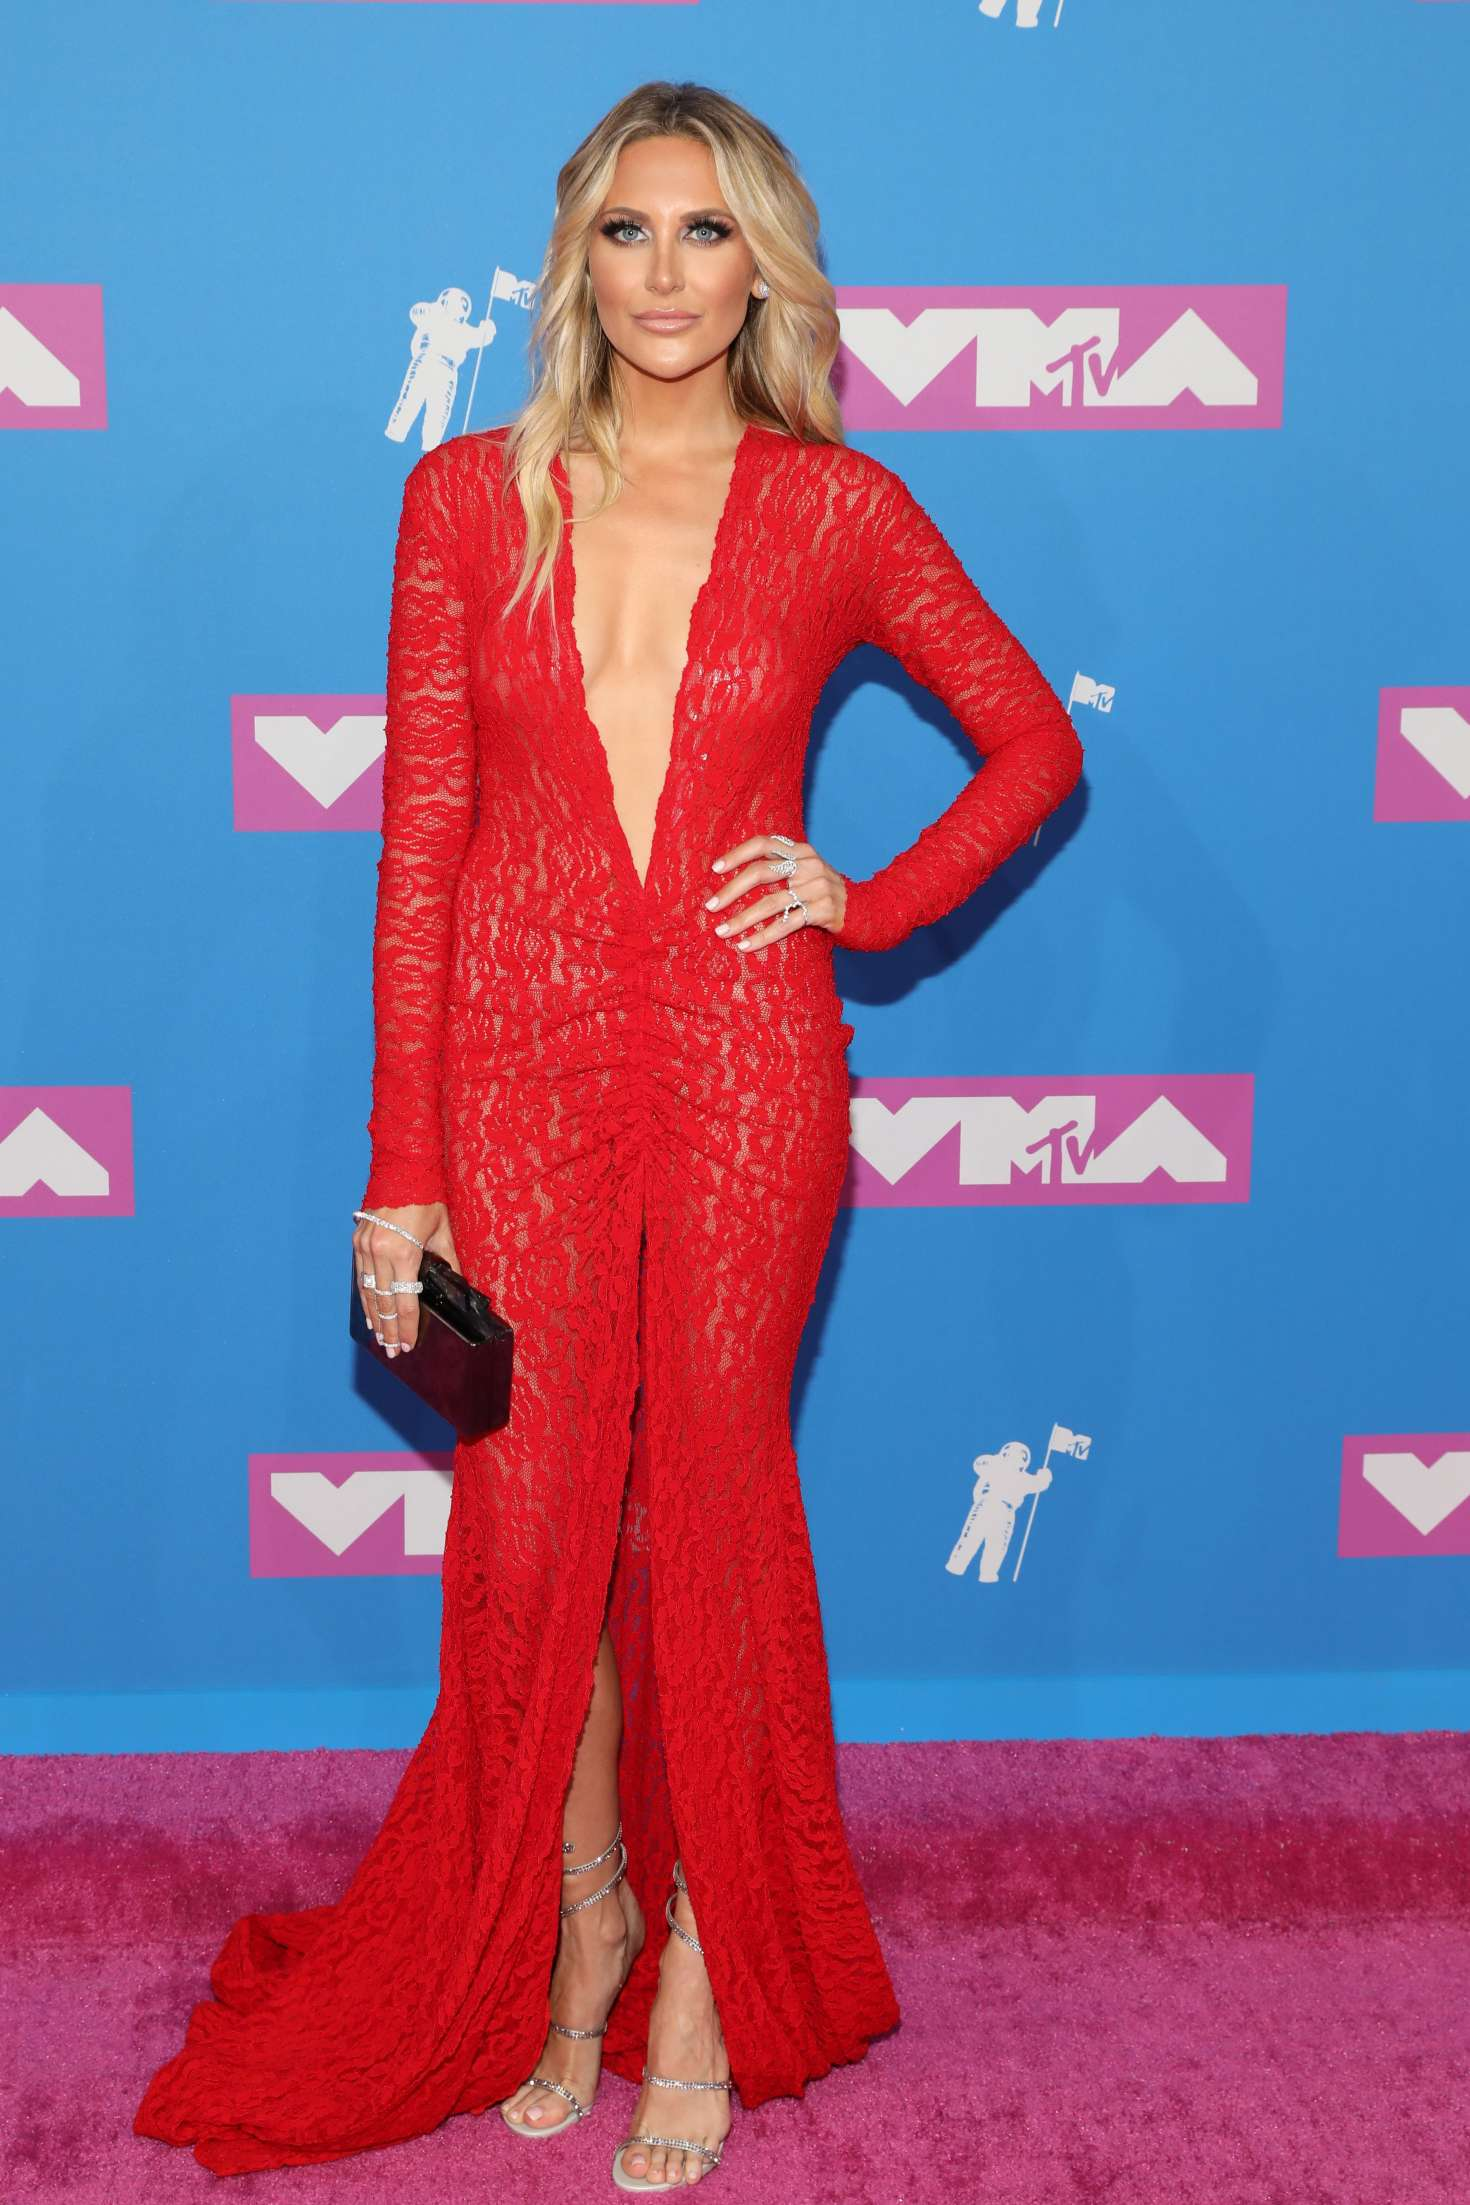 Stephanie Pratt - 2018 MTV Video Music Awards in New York City